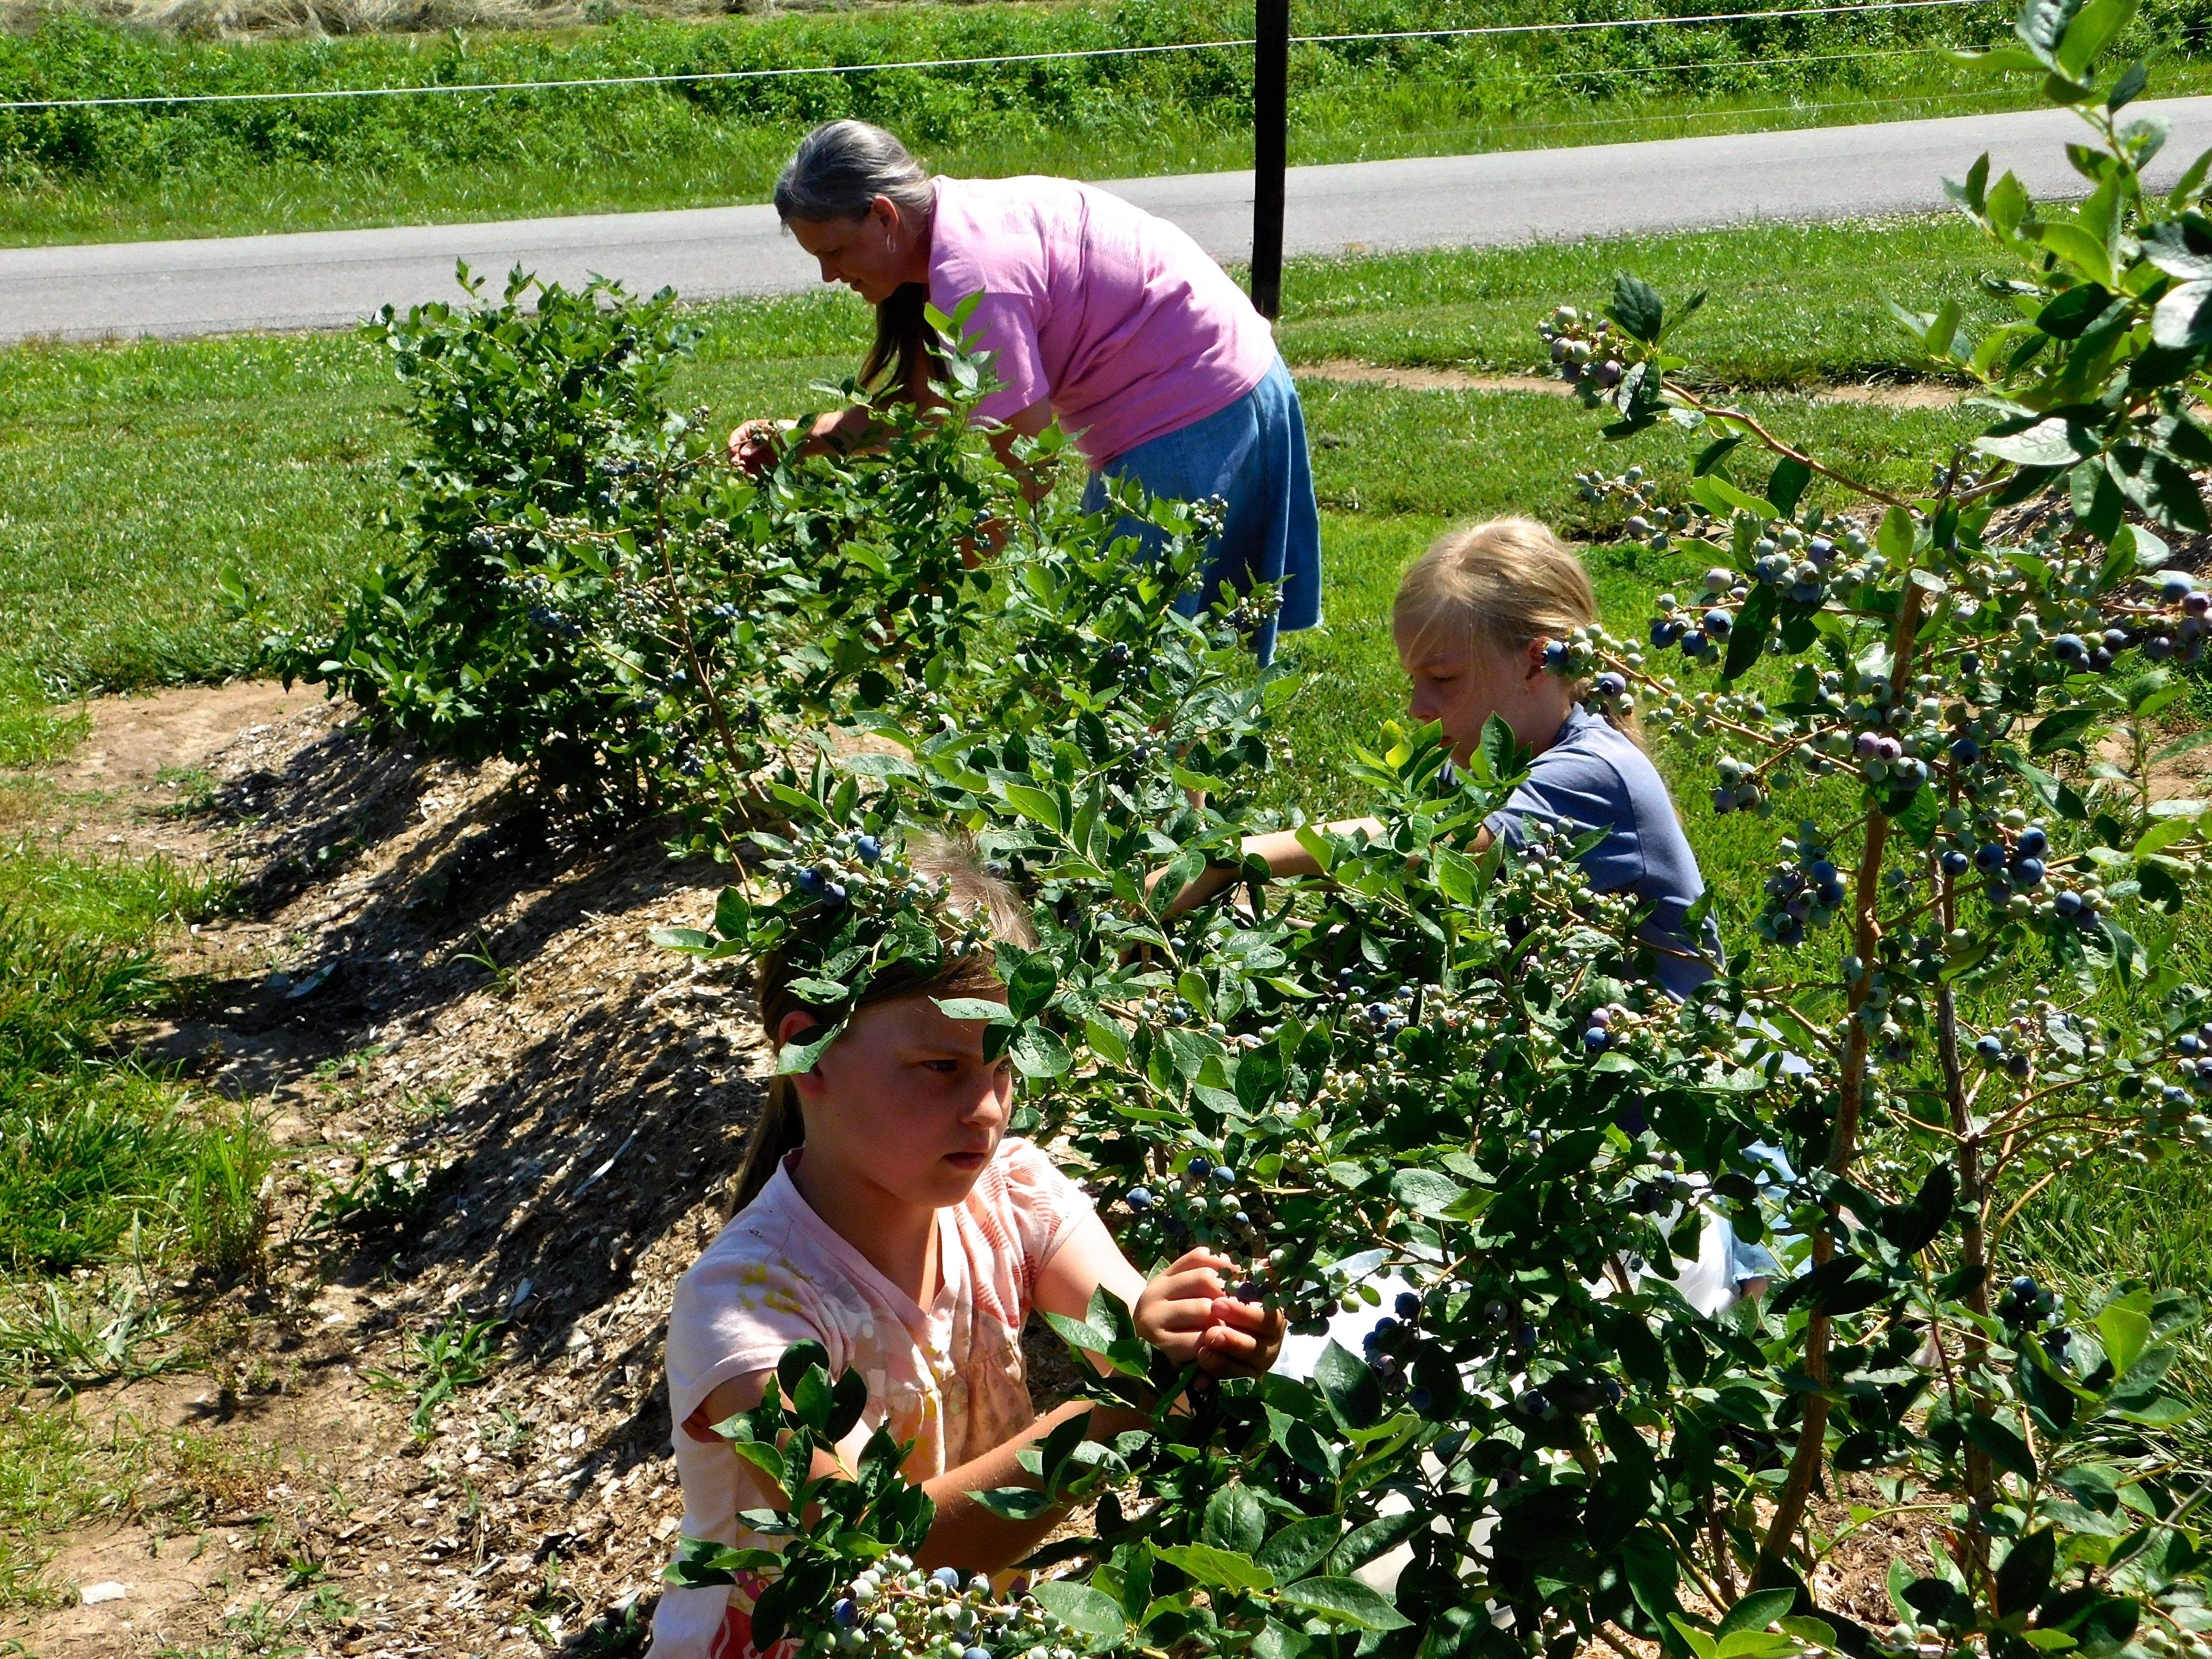 Twins Shoshana (front) and Lilliana helped their mother, Krista, pick blueberries last week at Miller Farms. Owner John Miller and his family added an acre of blueberries to the 1.5 acres of strawberries to their Campbell Hill farm last year. The family also operates a grocery store on the property.